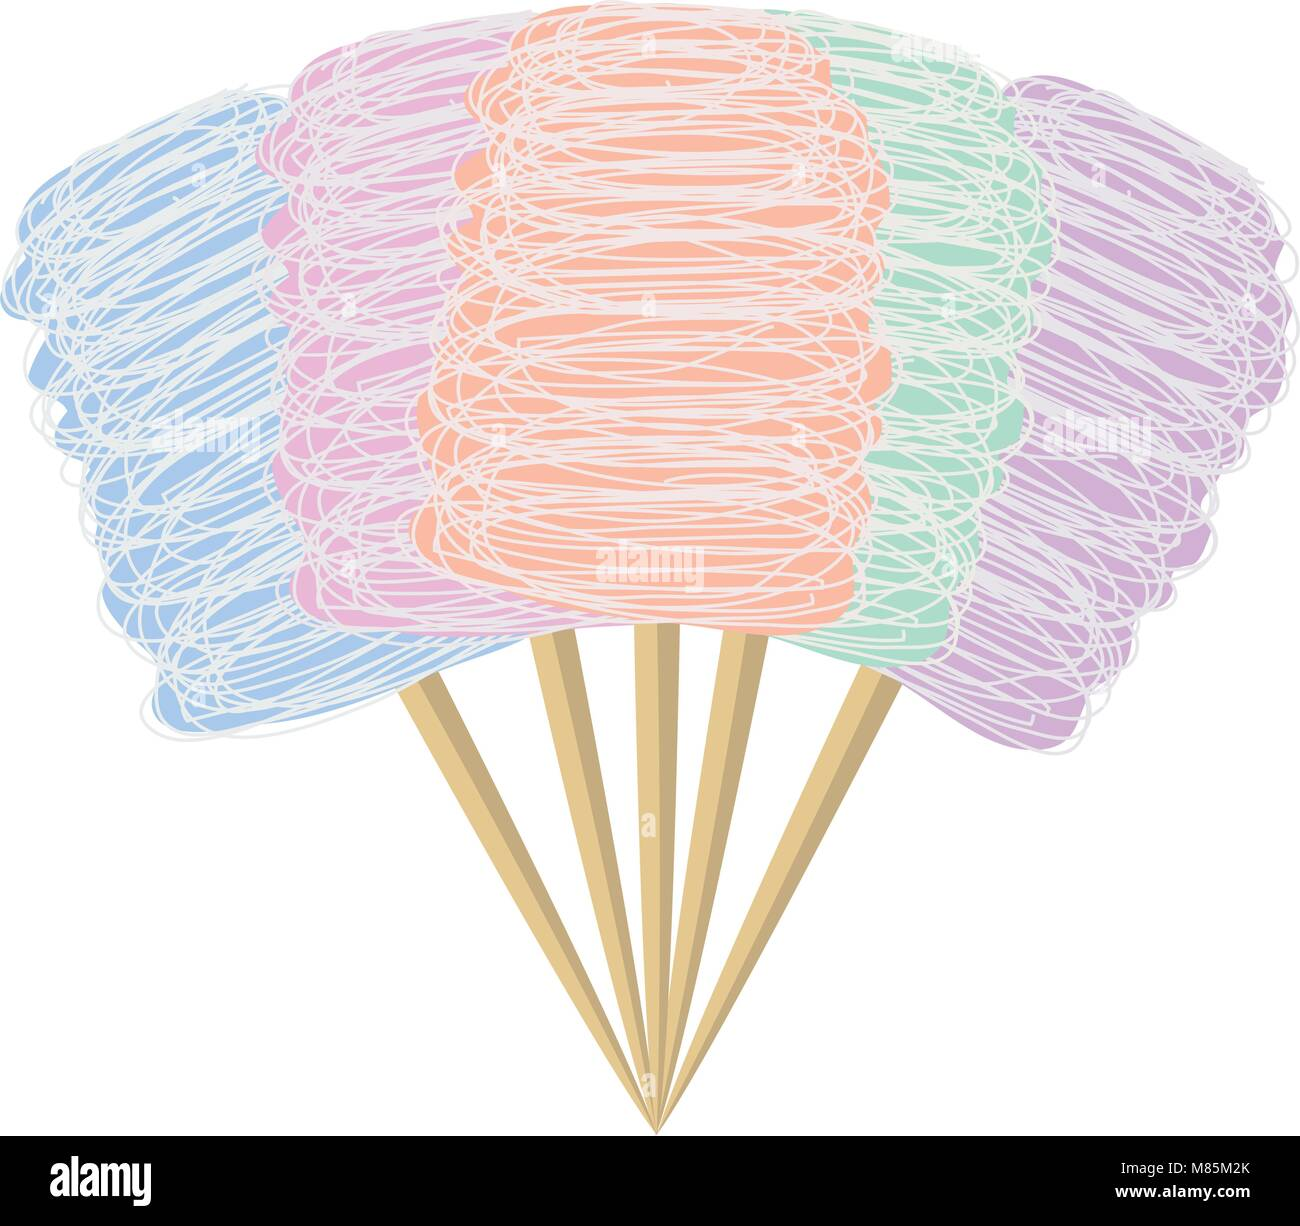 vector colorful candy cotton set isolated on white background. collection of sweet fluffy sugar clouds, flat design - Stock Image